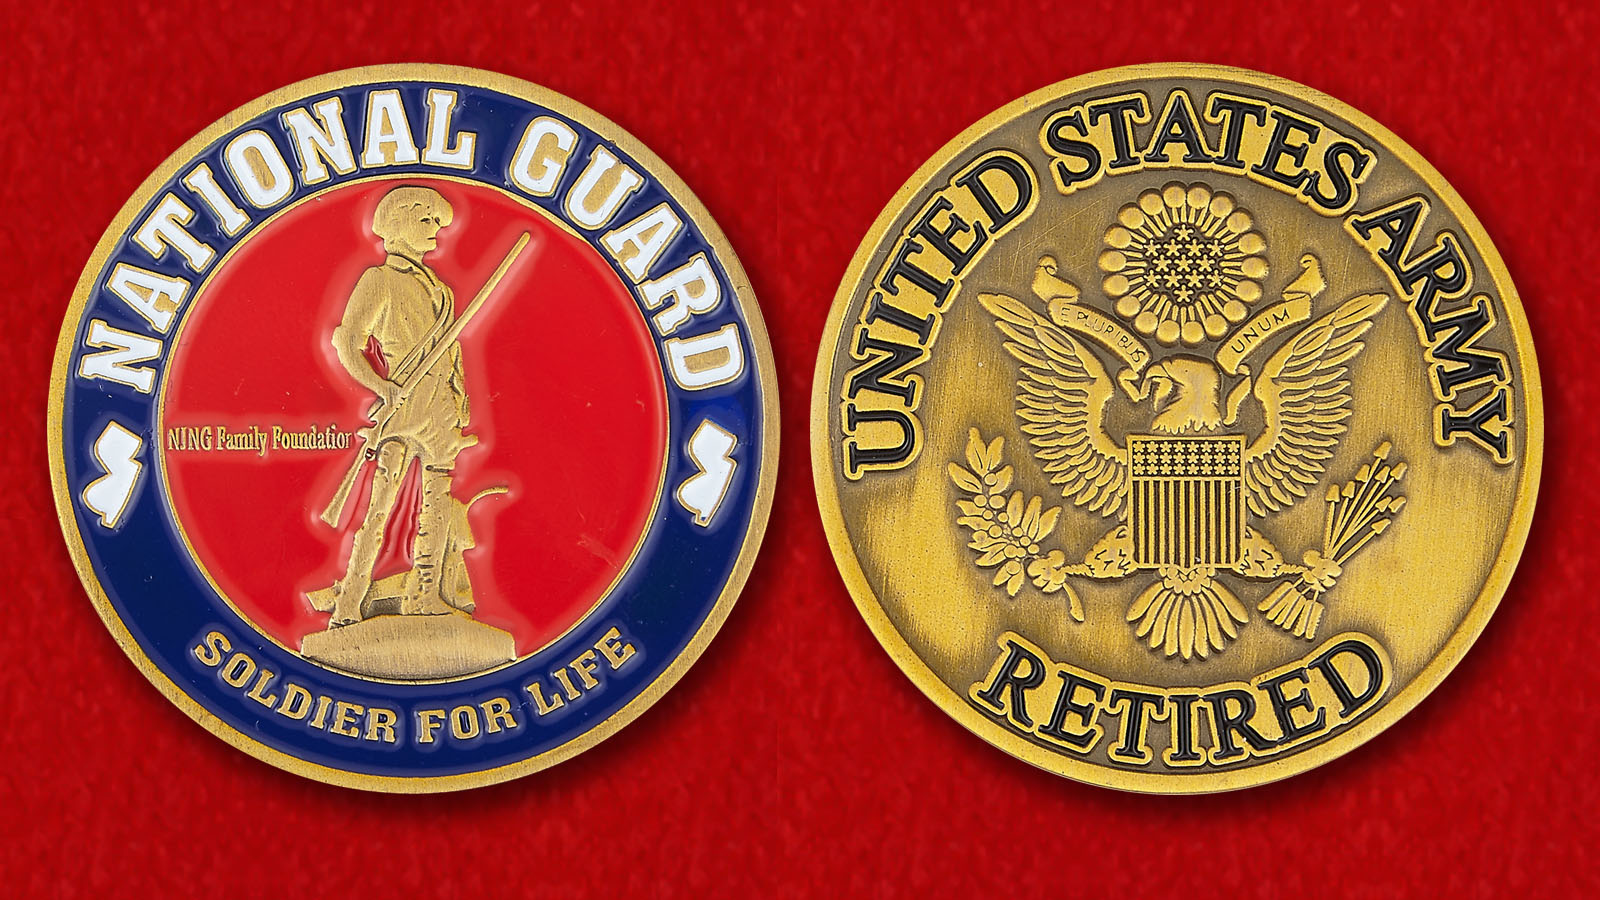 National Guard Soldier Life Challenge Coin - obverse and reverse